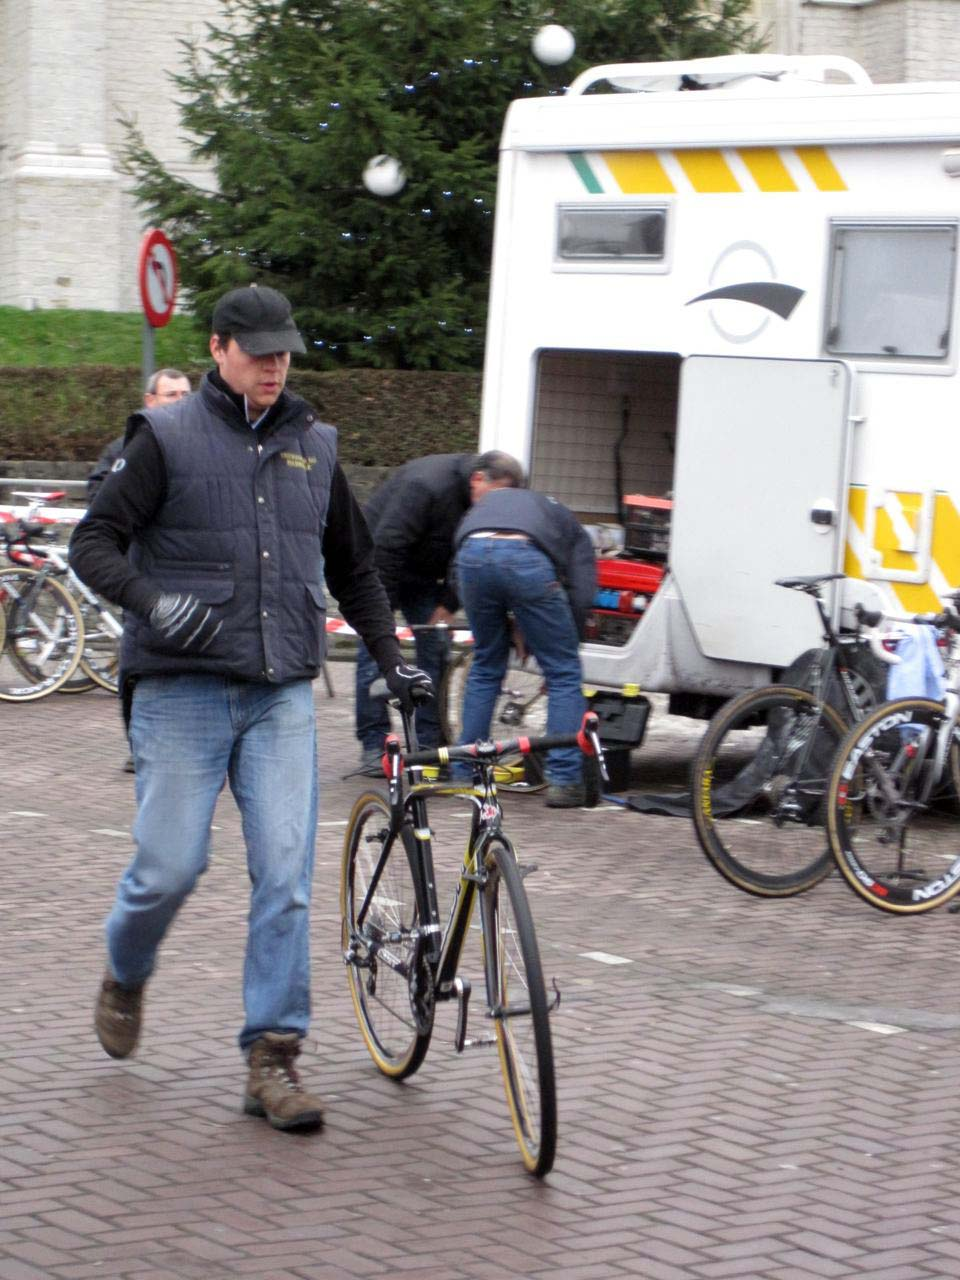 Euro Cross Camp staff member Brecht Hannon at Azencross in Loenhout. ? Nathan Phillips